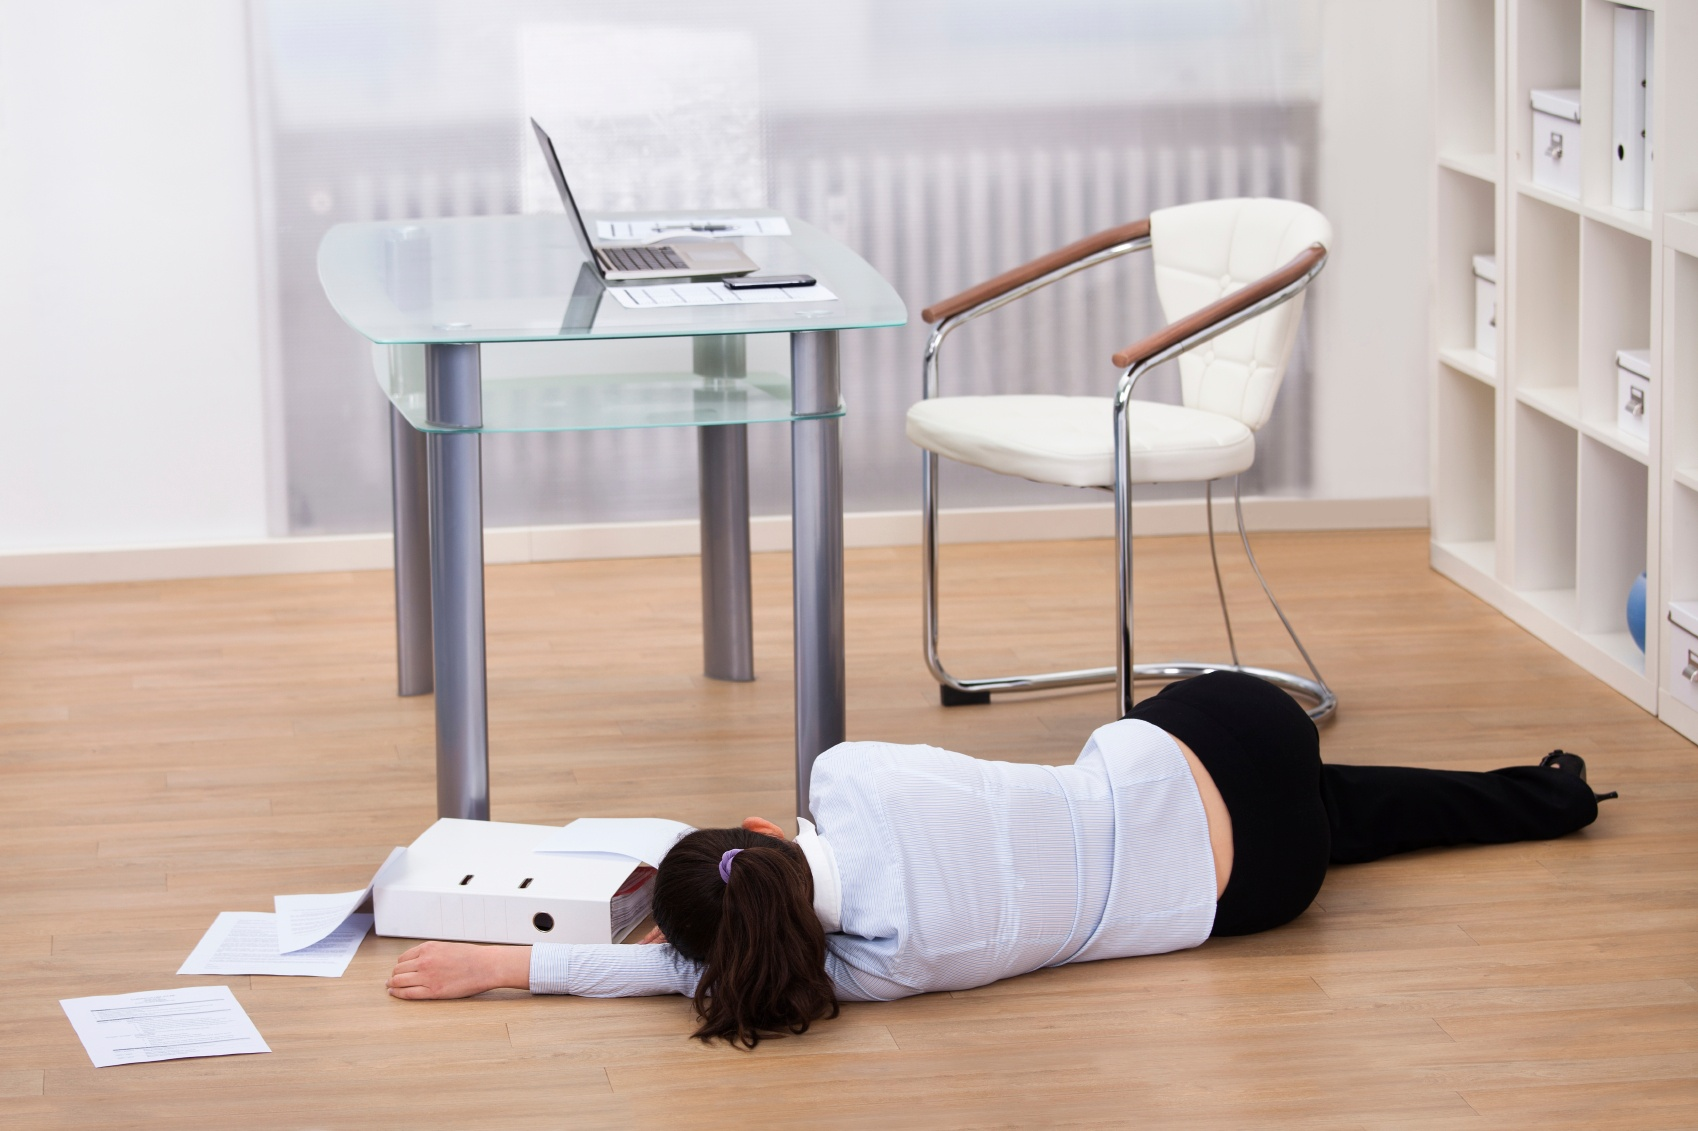 Georgia Slip and Fall Doctor Referral